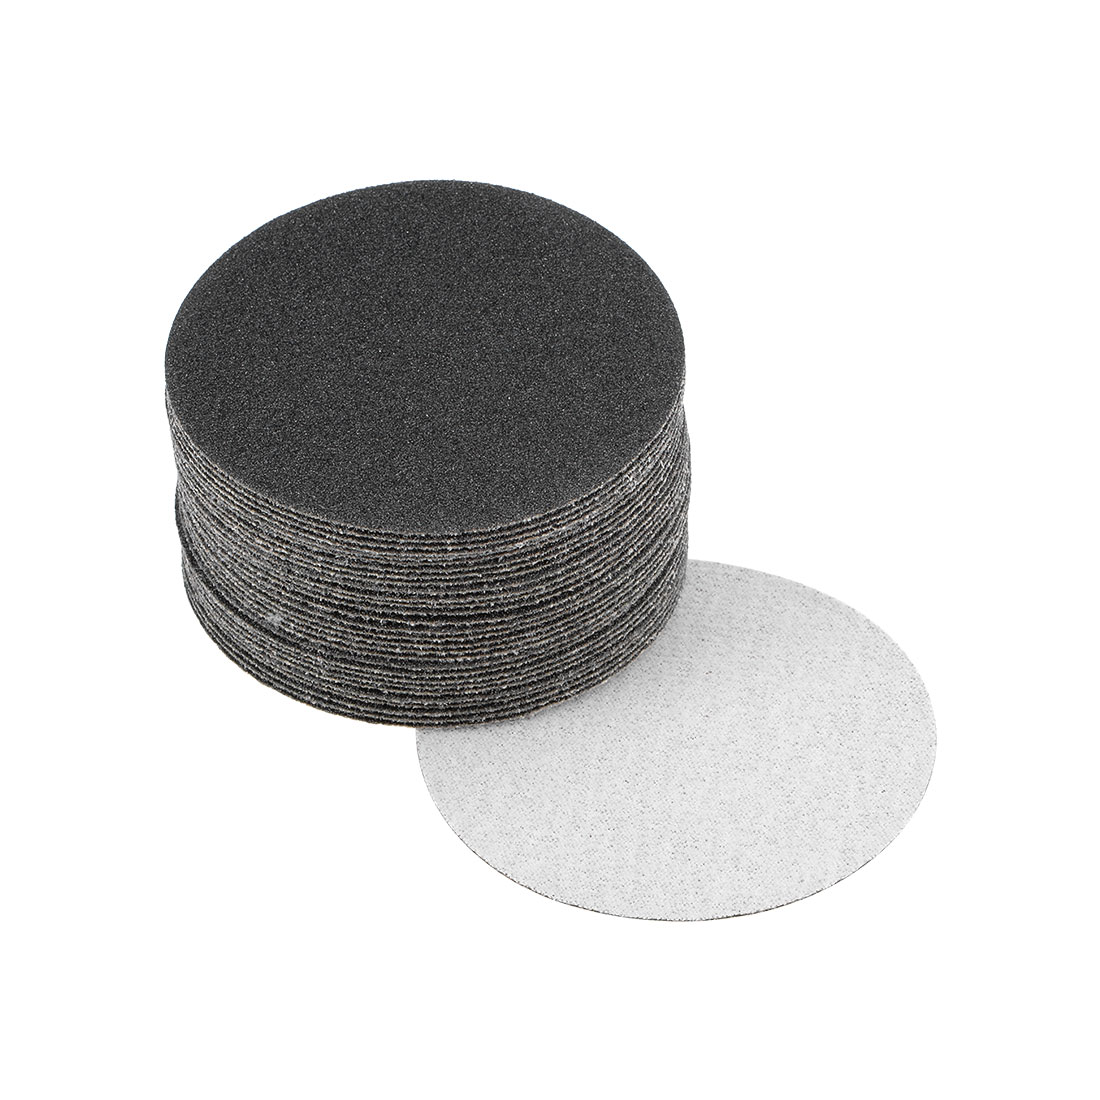 3 inch Wet Dry Discs 100 Grit Hook and Loop Sanding Disc Silicon Carbide 30pcs